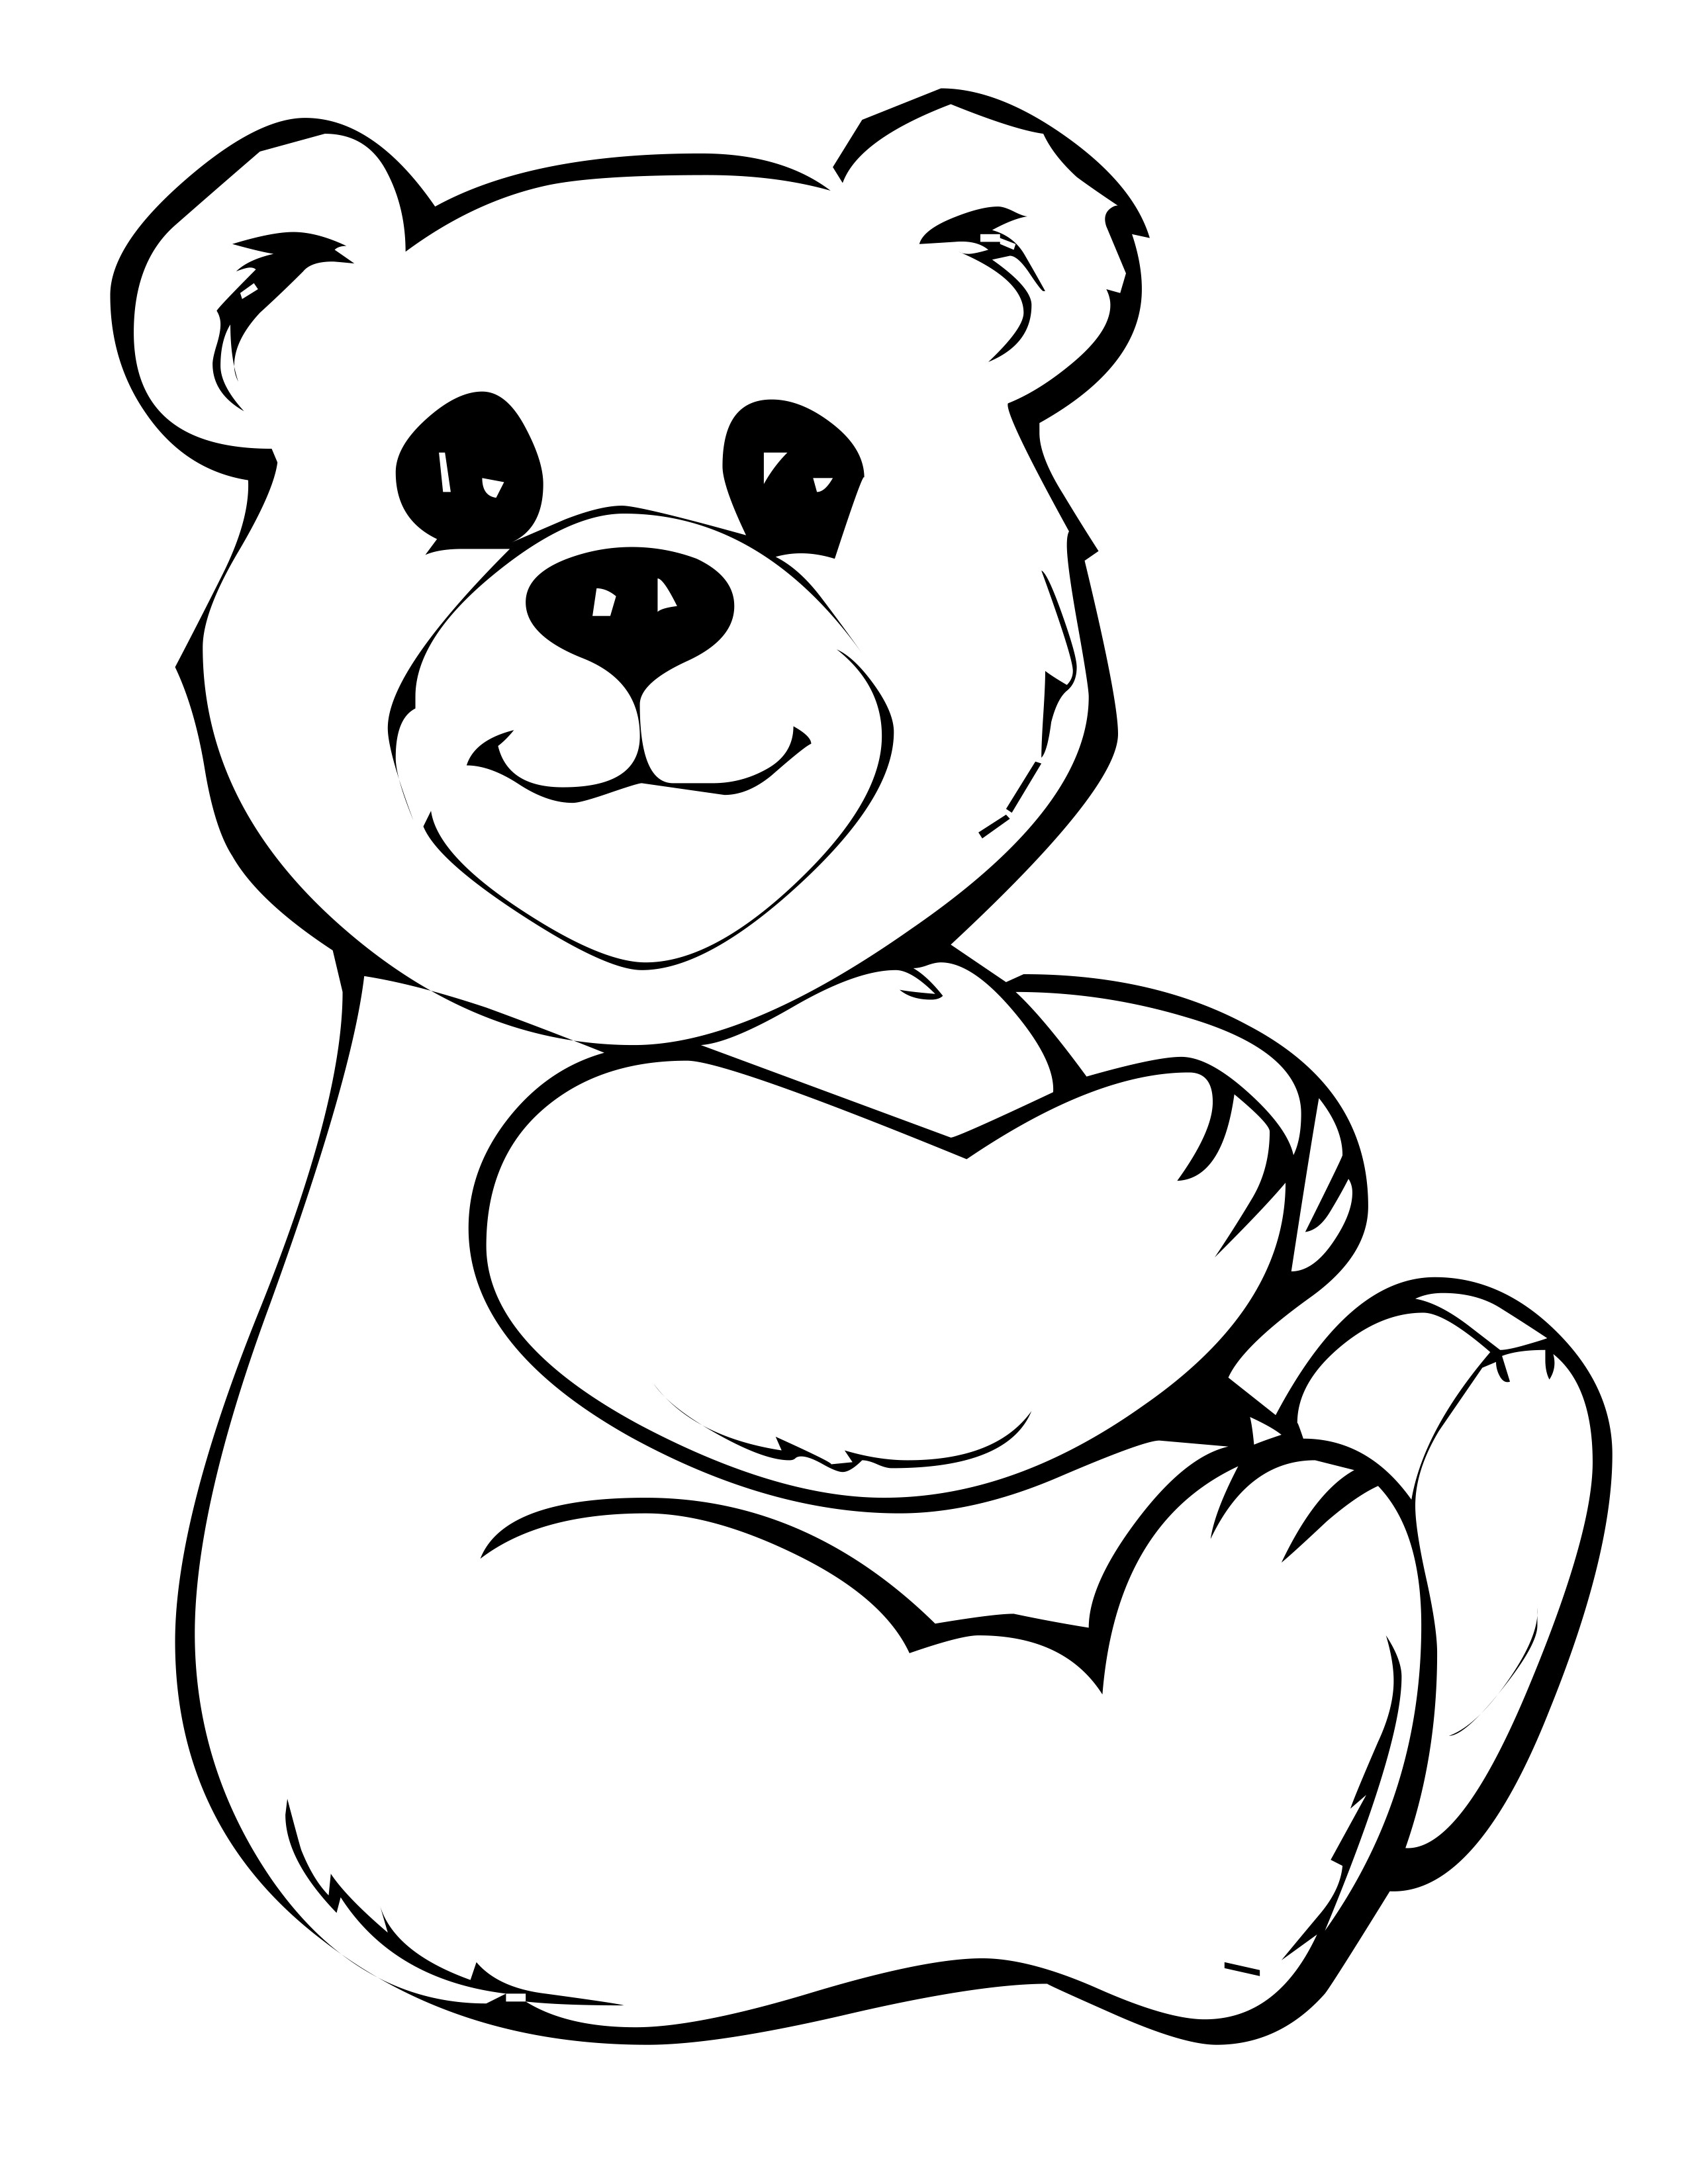 coloring bears free bear coloring pages coloring bears 1 1